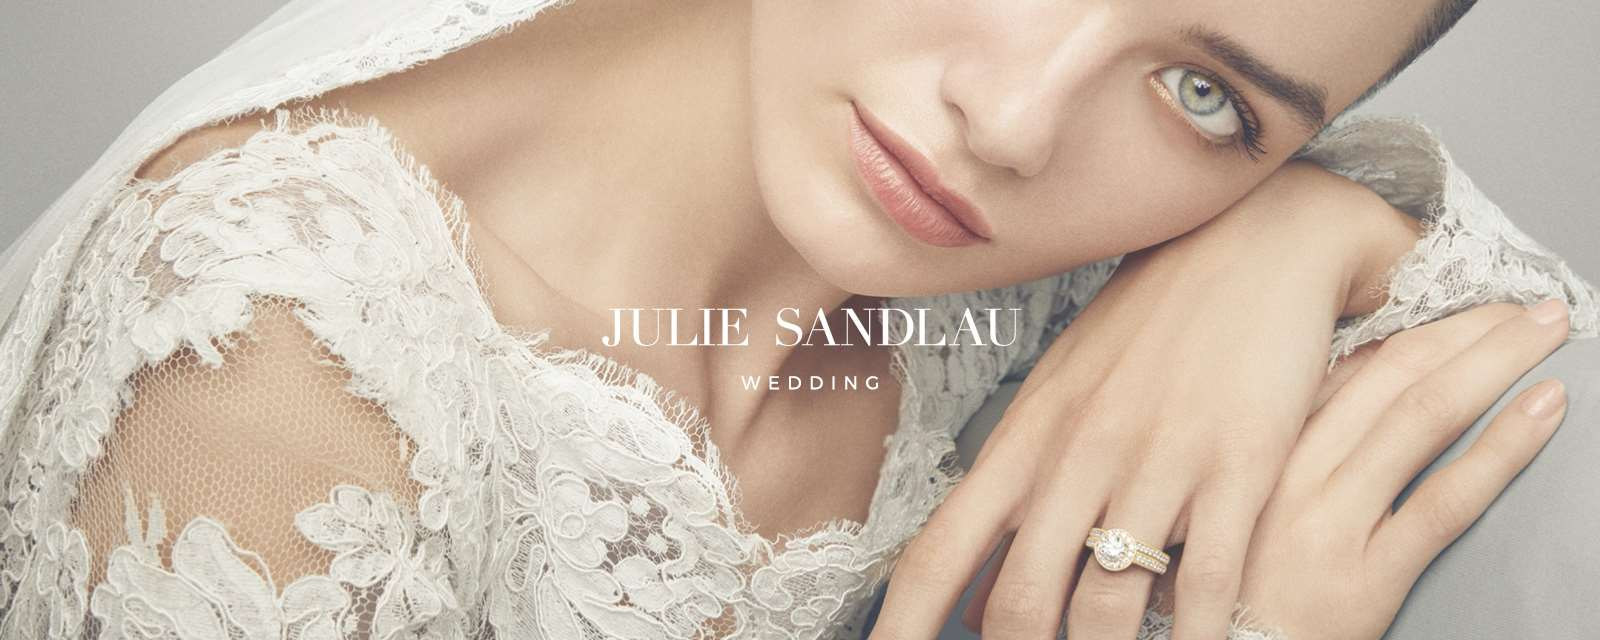 weddingjuliesandlau